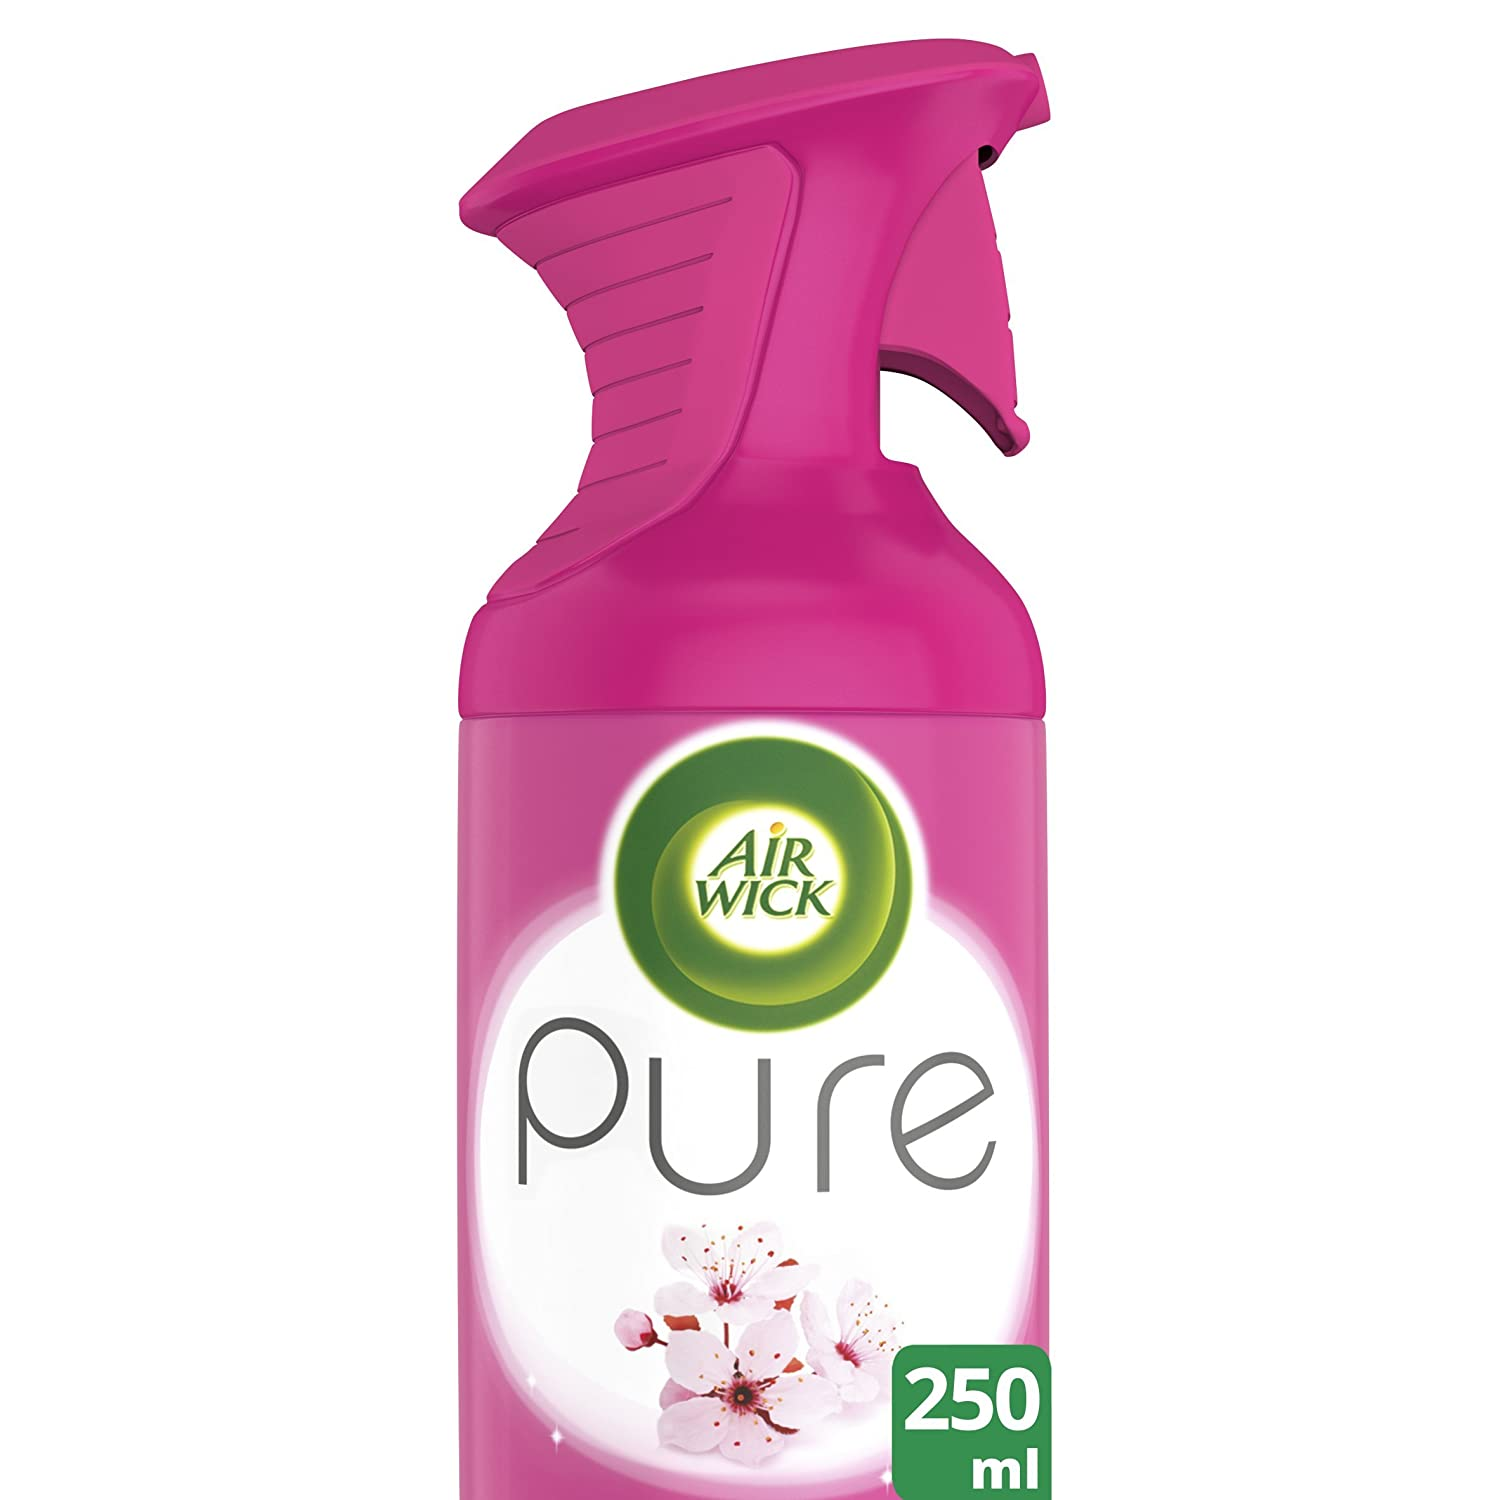 Air Wick Pure Freshener Spring Delight 250 ml (Pack of 6)